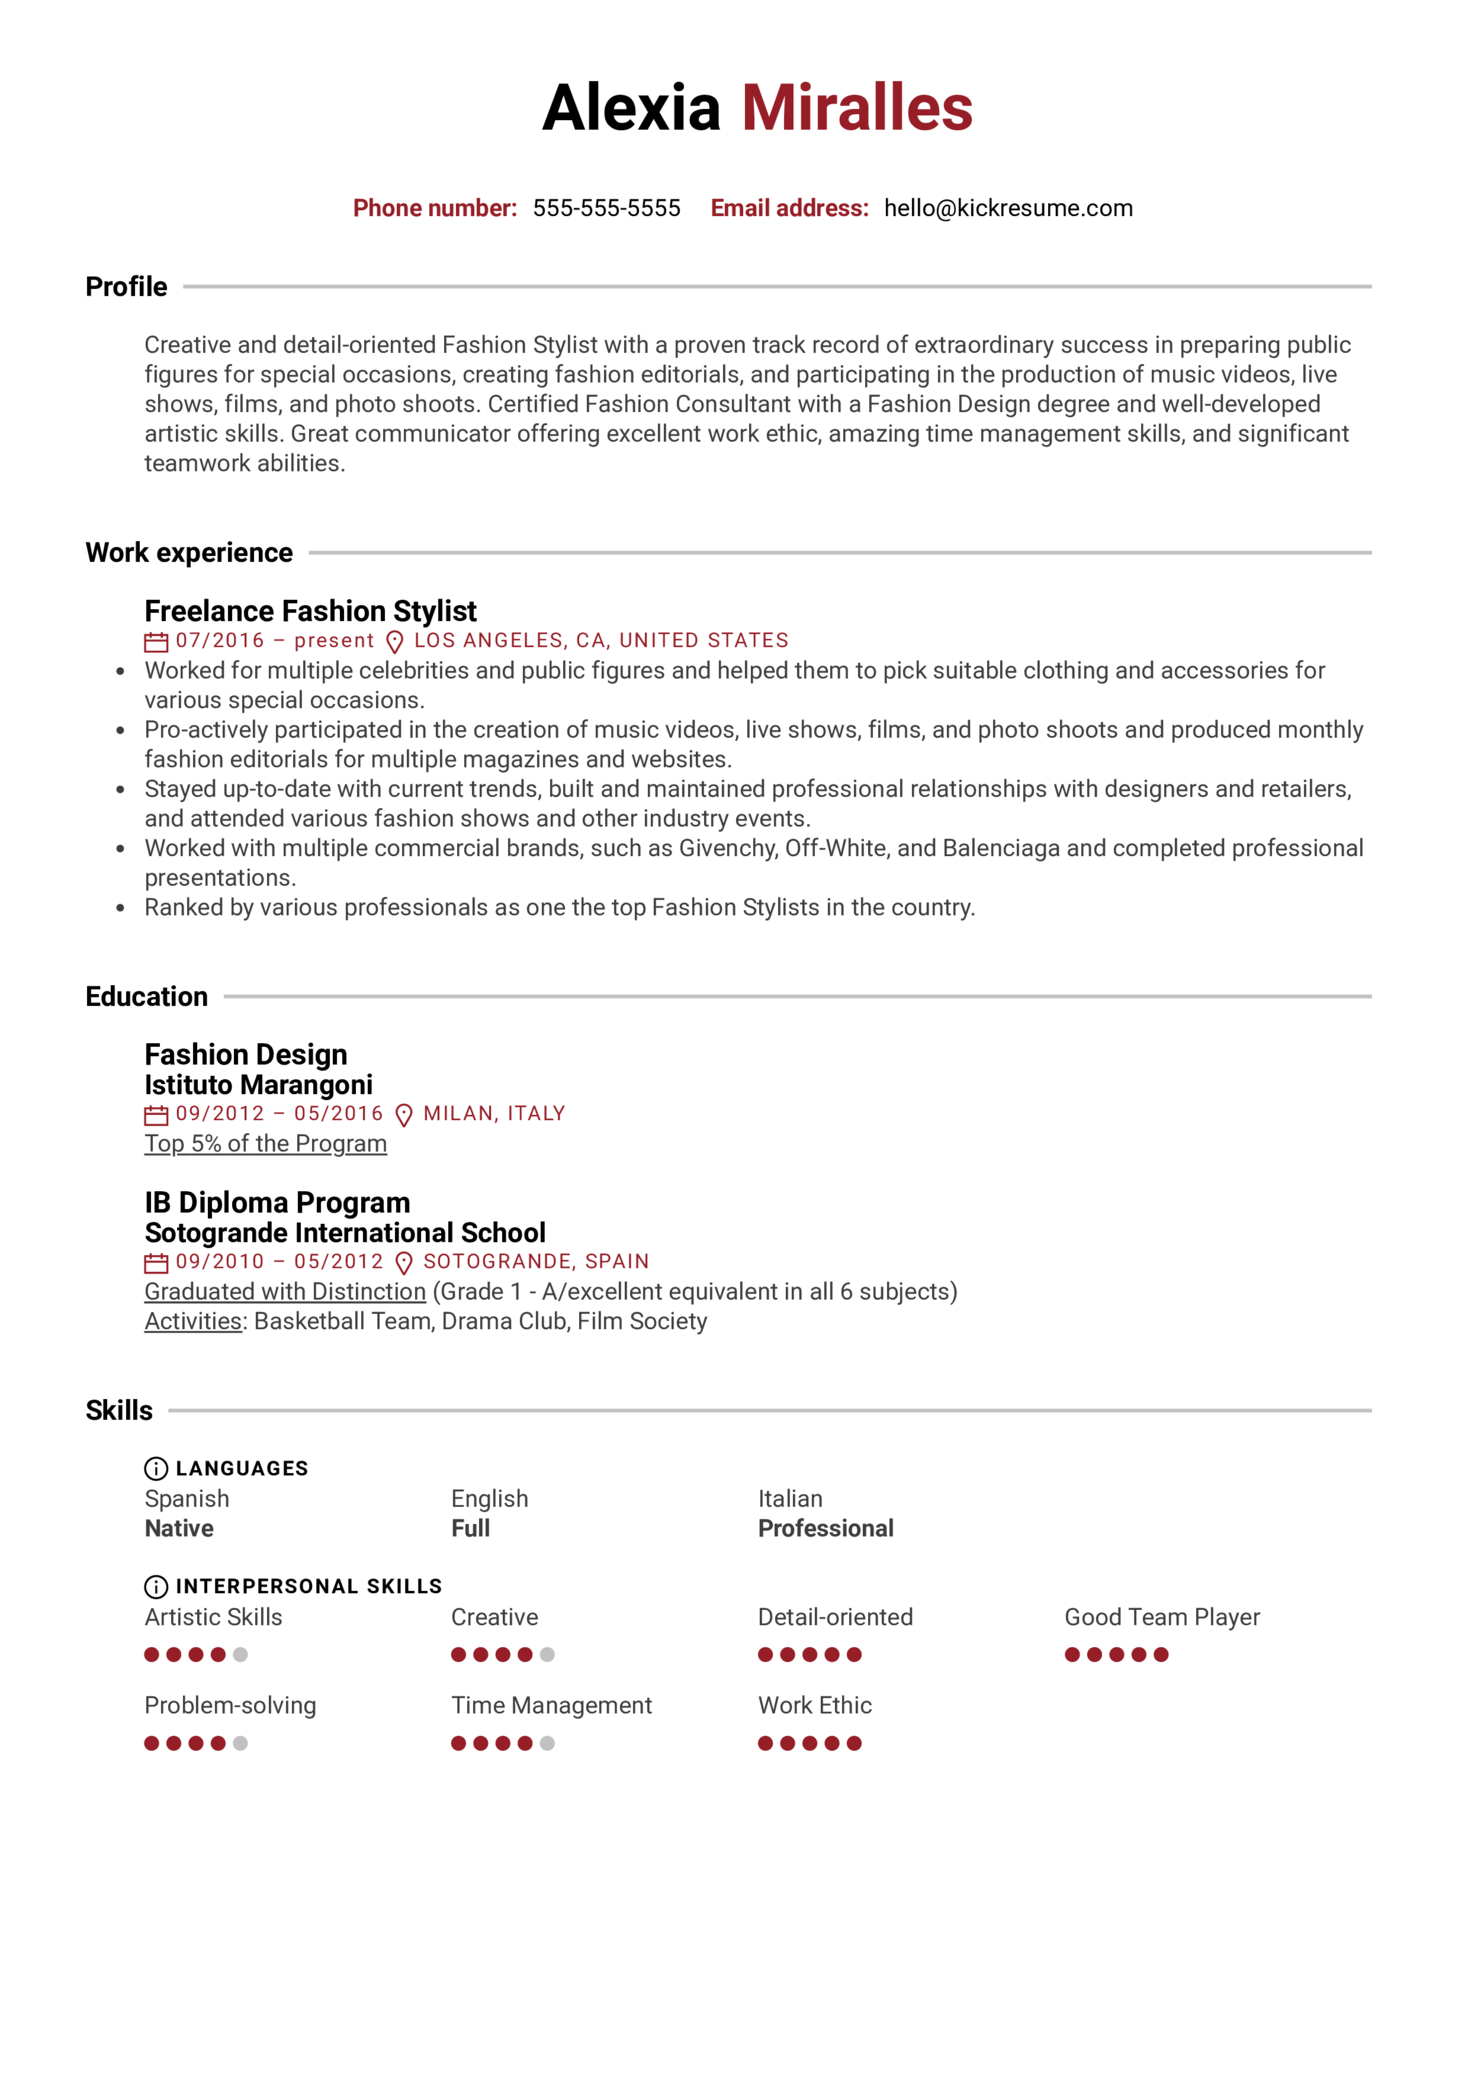 Fashion Stylist Resume Example (Part 1)